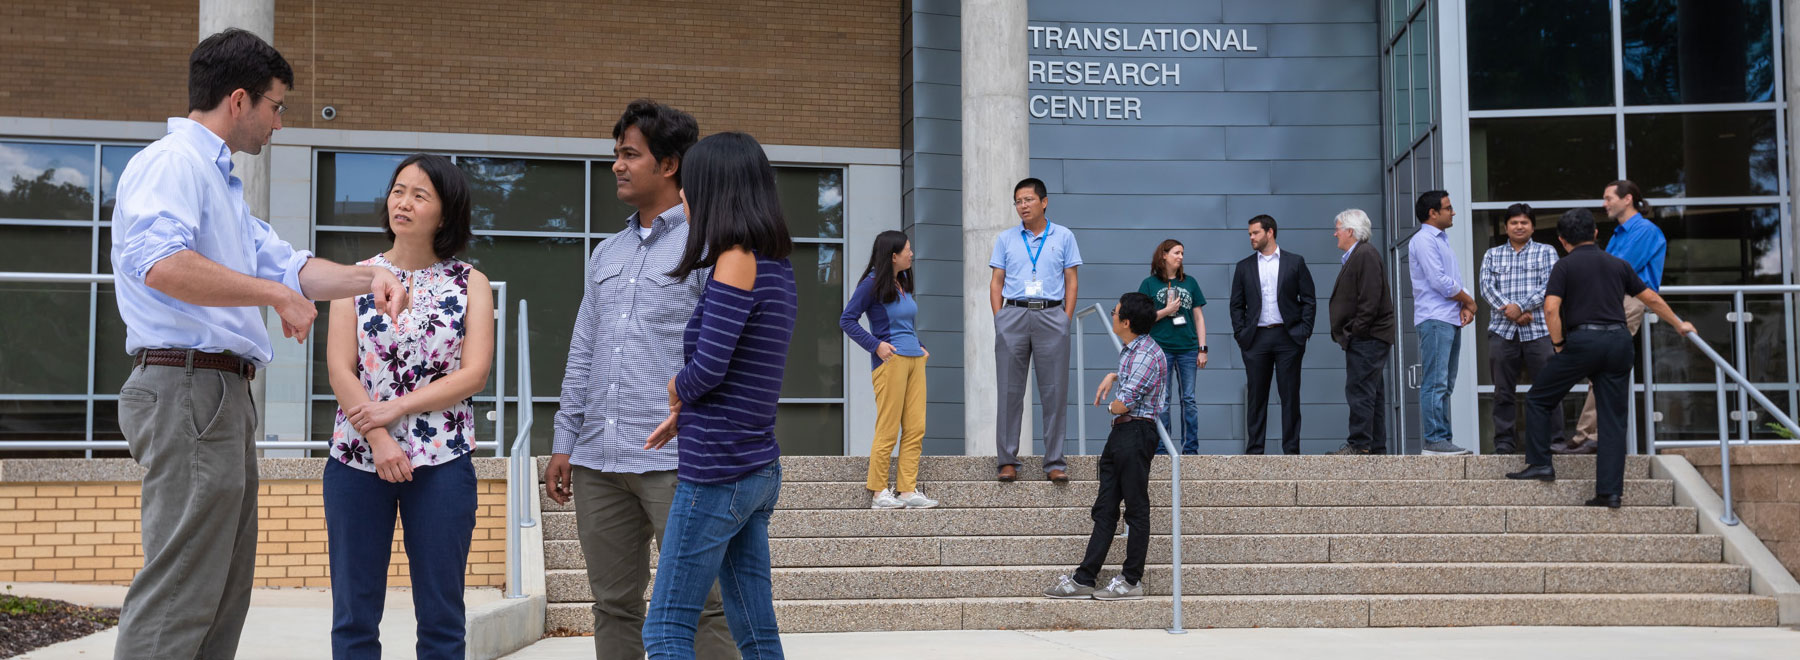 Students and faculty in front of the Translational Research Center